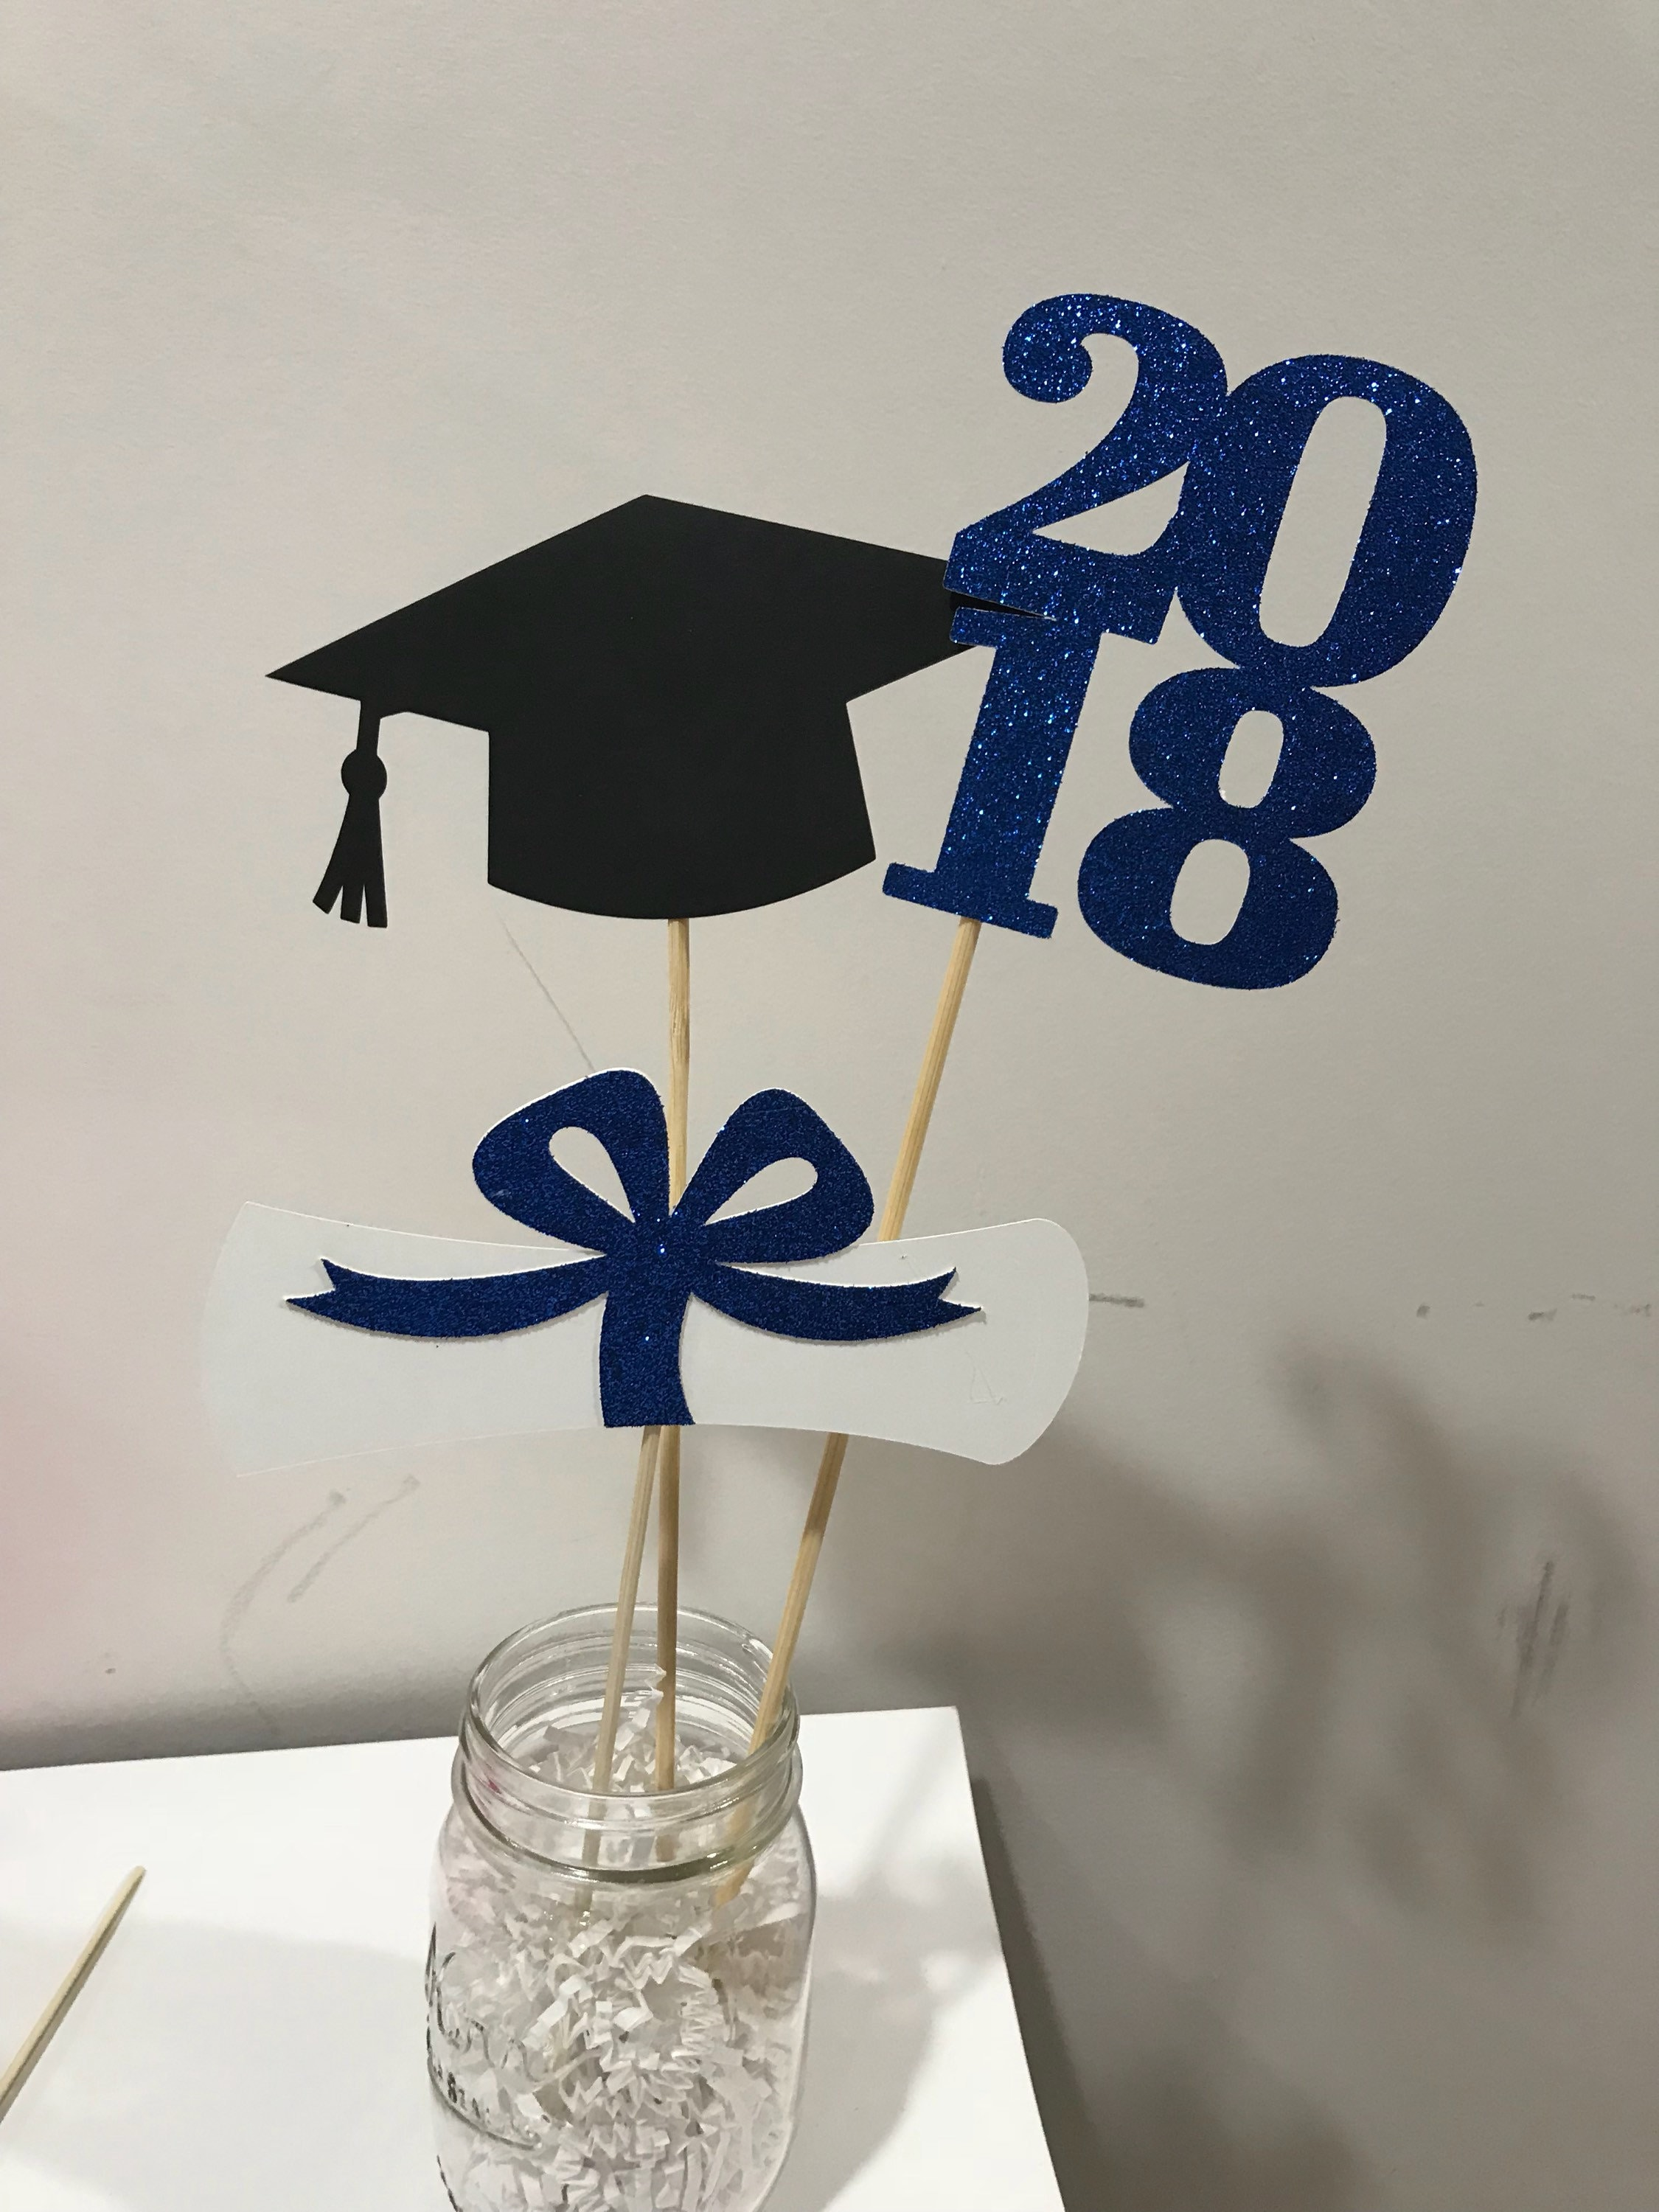 Graduation party decorations 2018 graduation centerpiece for Decoration 2018